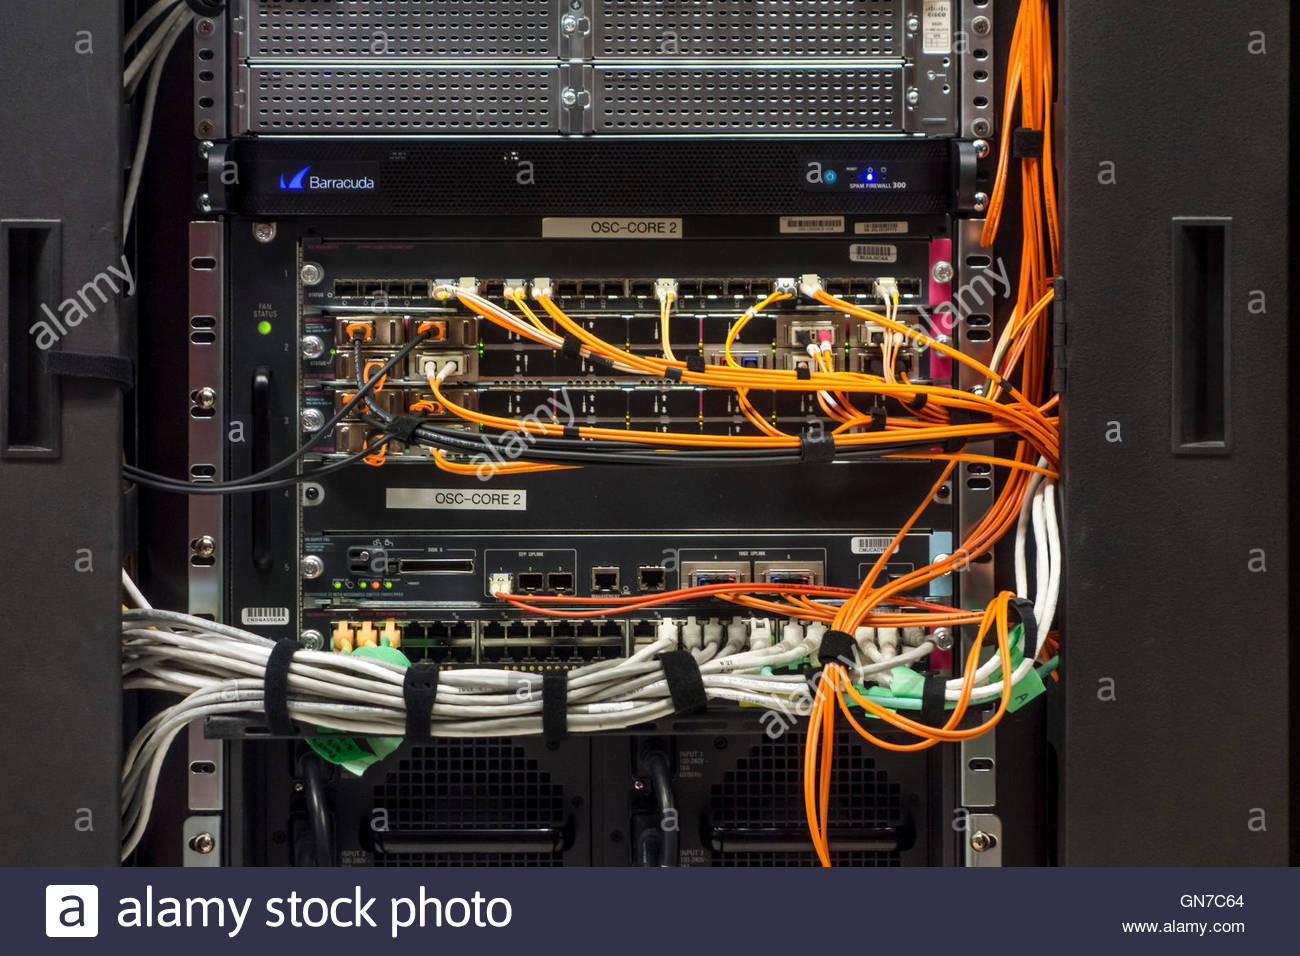 Mainframe computer that runs the Ontario Science Centre a museum in Toronto Ontario Canada wires wired Cisco computers - Stock Image